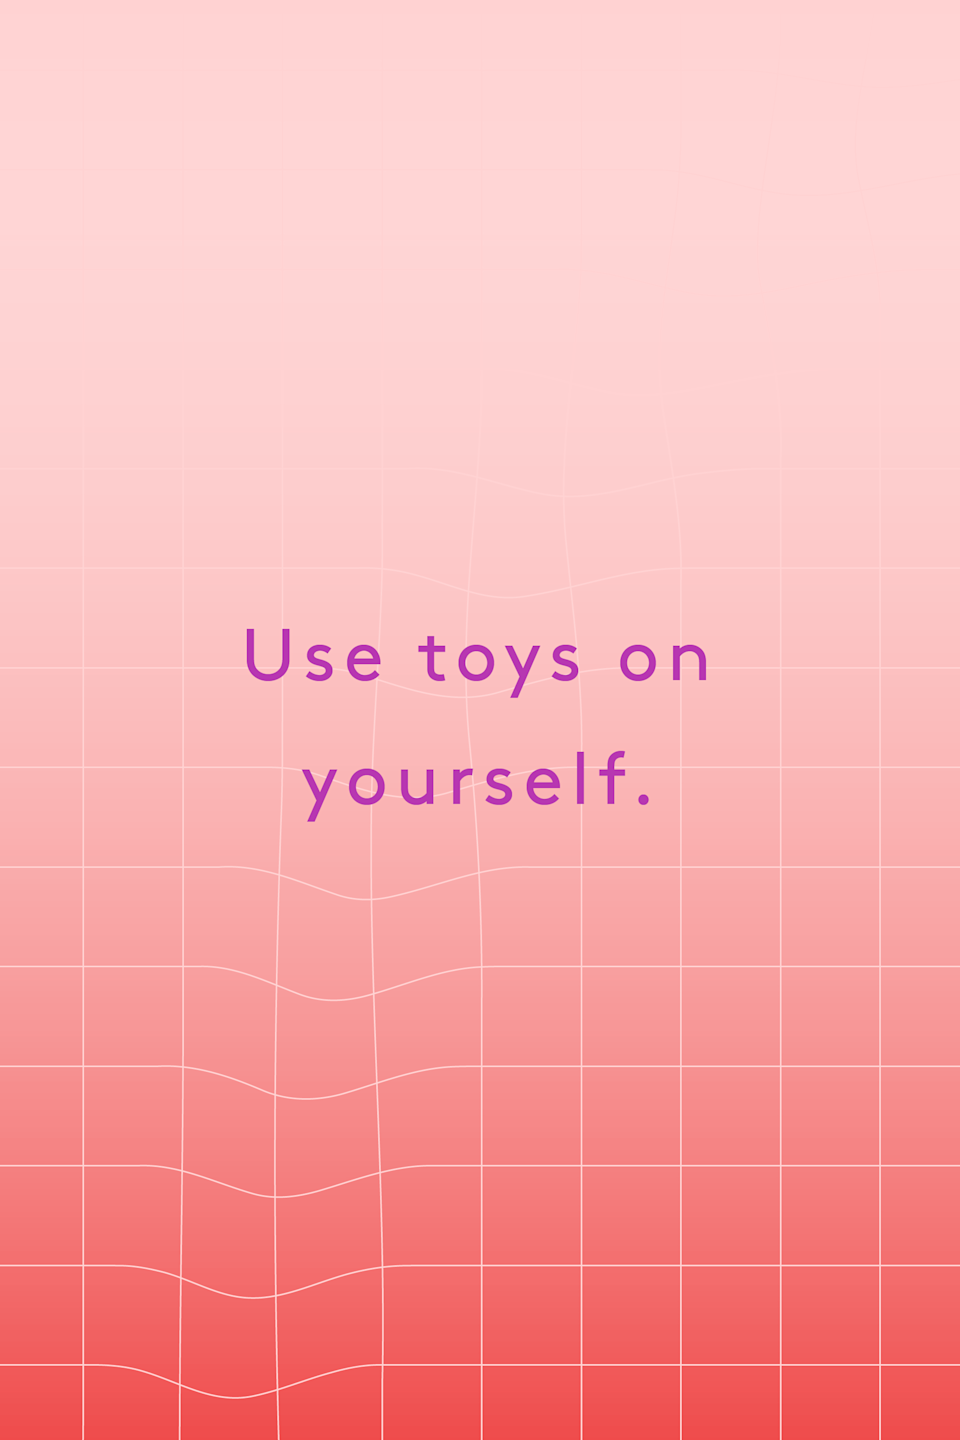 """<p><strong>Use toys on yourself.</strong></p><p>""""Sex toys can be arousing during a call — I've often used my magic wand or egg during calls. The sounds of the vibrations will heighten your enjoyment. That in turn, will magnify the reaction from the person on the other end of the line.""""</p><p>—<a href=""""http://www.goodreads.com/author/show/4436246.Elaine_Shuel"""" rel=""""nofollow noopener"""" target=""""_blank"""" data-ylk=""""slk:Elaine Shuel"""" class=""""link rapid-noclick-resp"""">Elaine Shuel</a></p><span class=""""copyright"""">Illustrated by: Aimee Sy.</span>"""